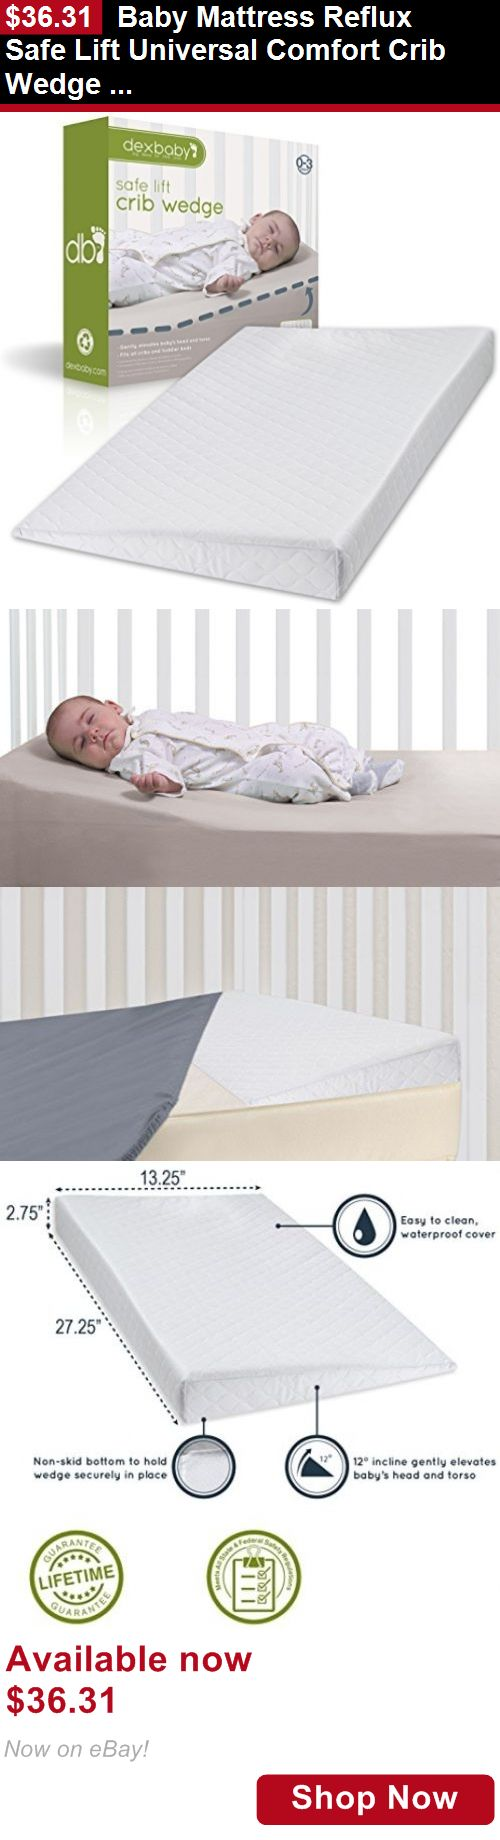 Baby bed for reflux - Baby Safety Sleep Positioners Baby Mattress Reflux Safe Lift Universal Comfort Crib Wedge Sleep Positioner